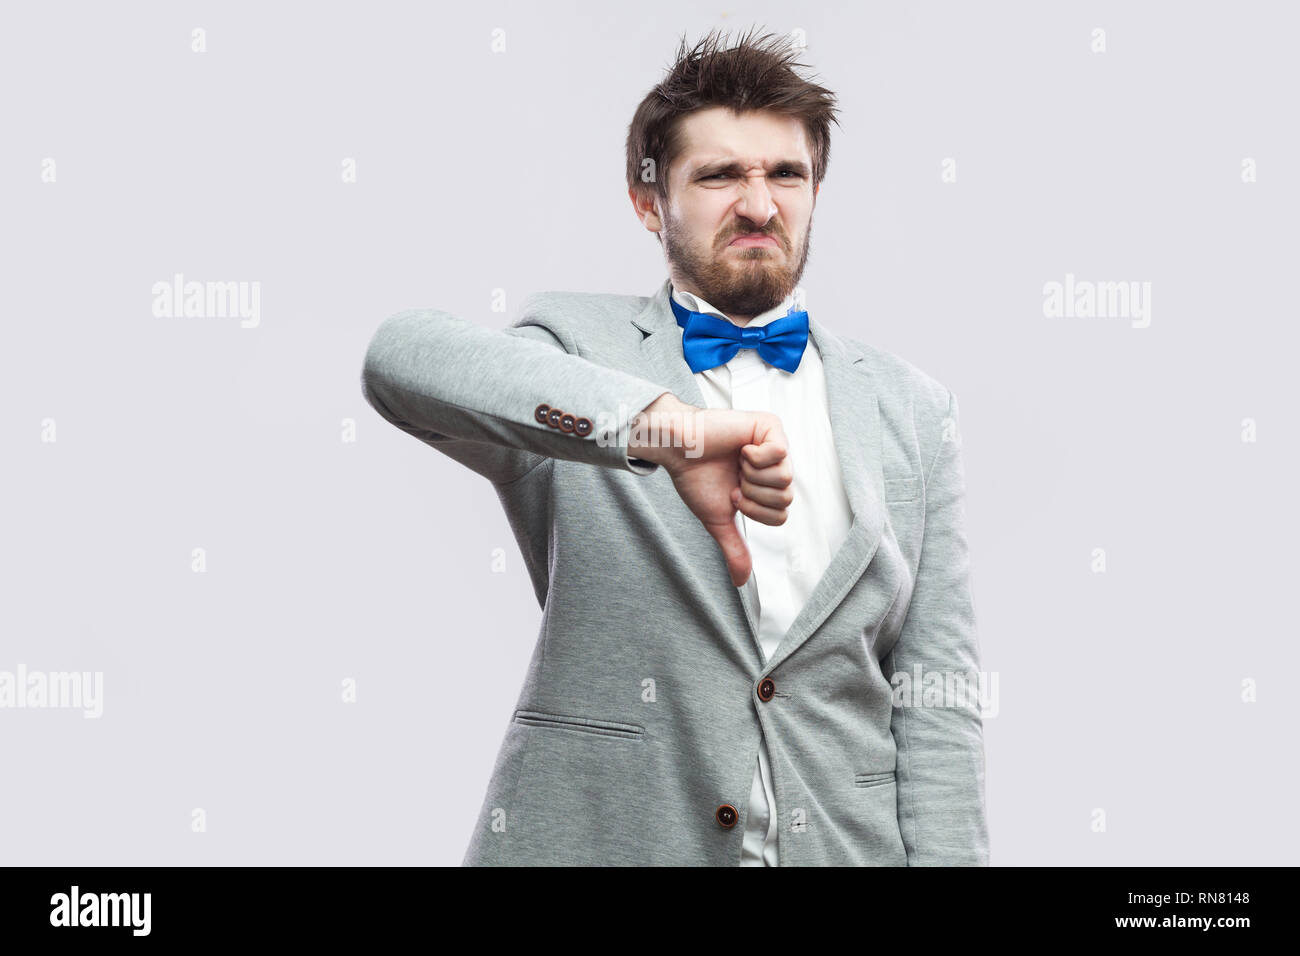 07d55d716e52 Portrait of dissatisfied handsome bearded man in casual grey suit and blue  bow tie